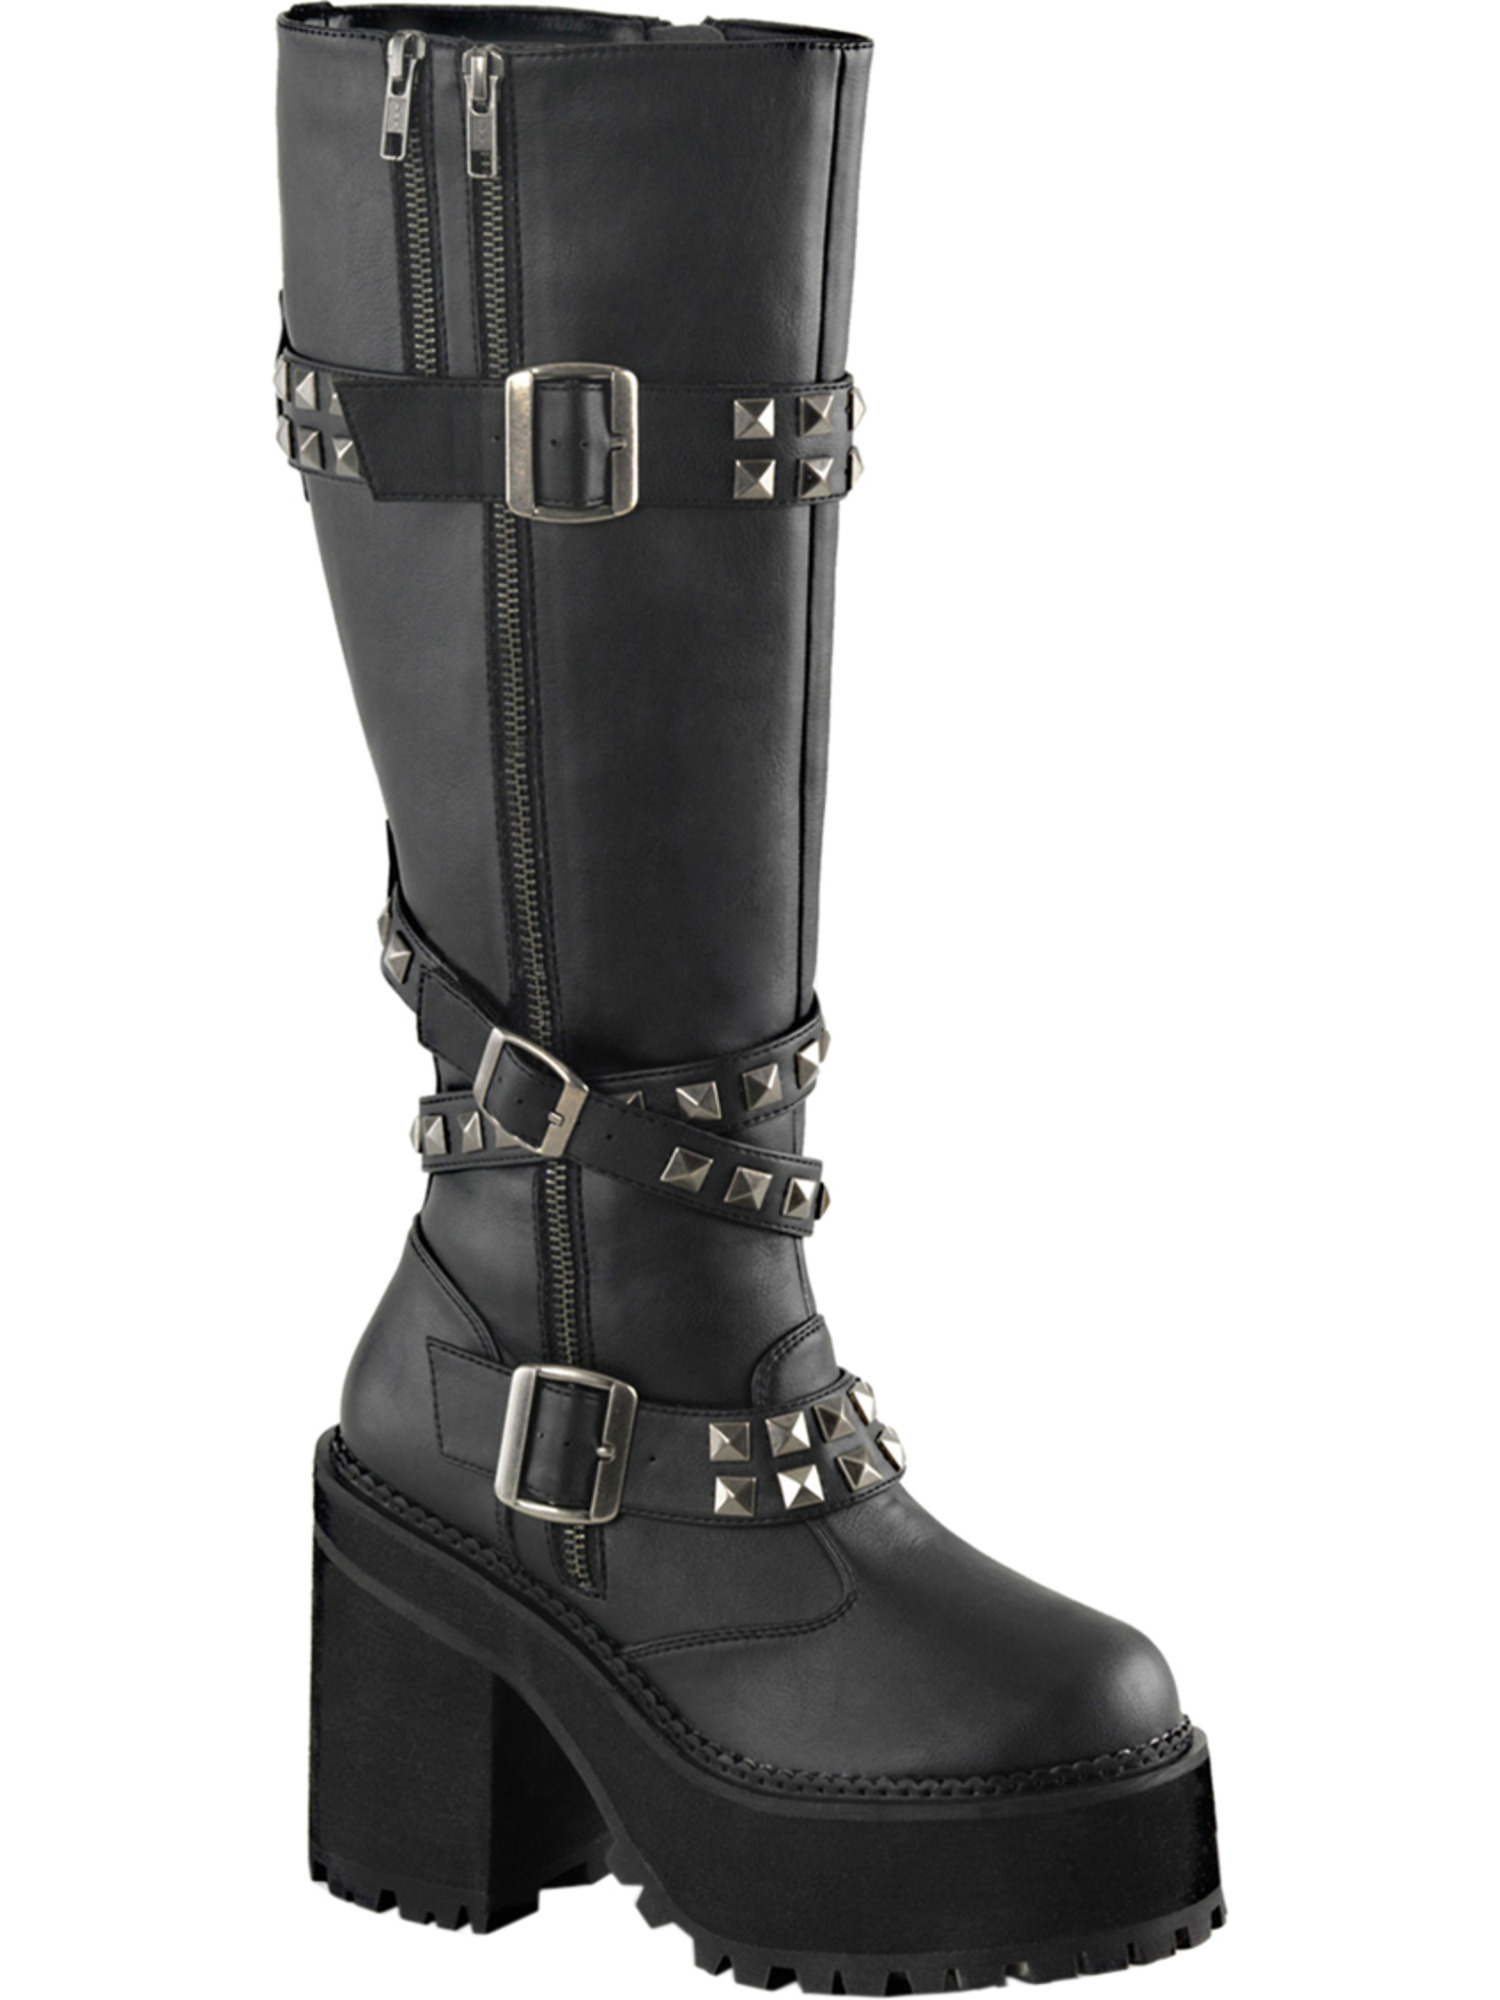 Womens Vegan Leather High Boots Black Platforms Knee High Leather Boots Studs 4 3/4 In Heel 9b79d3